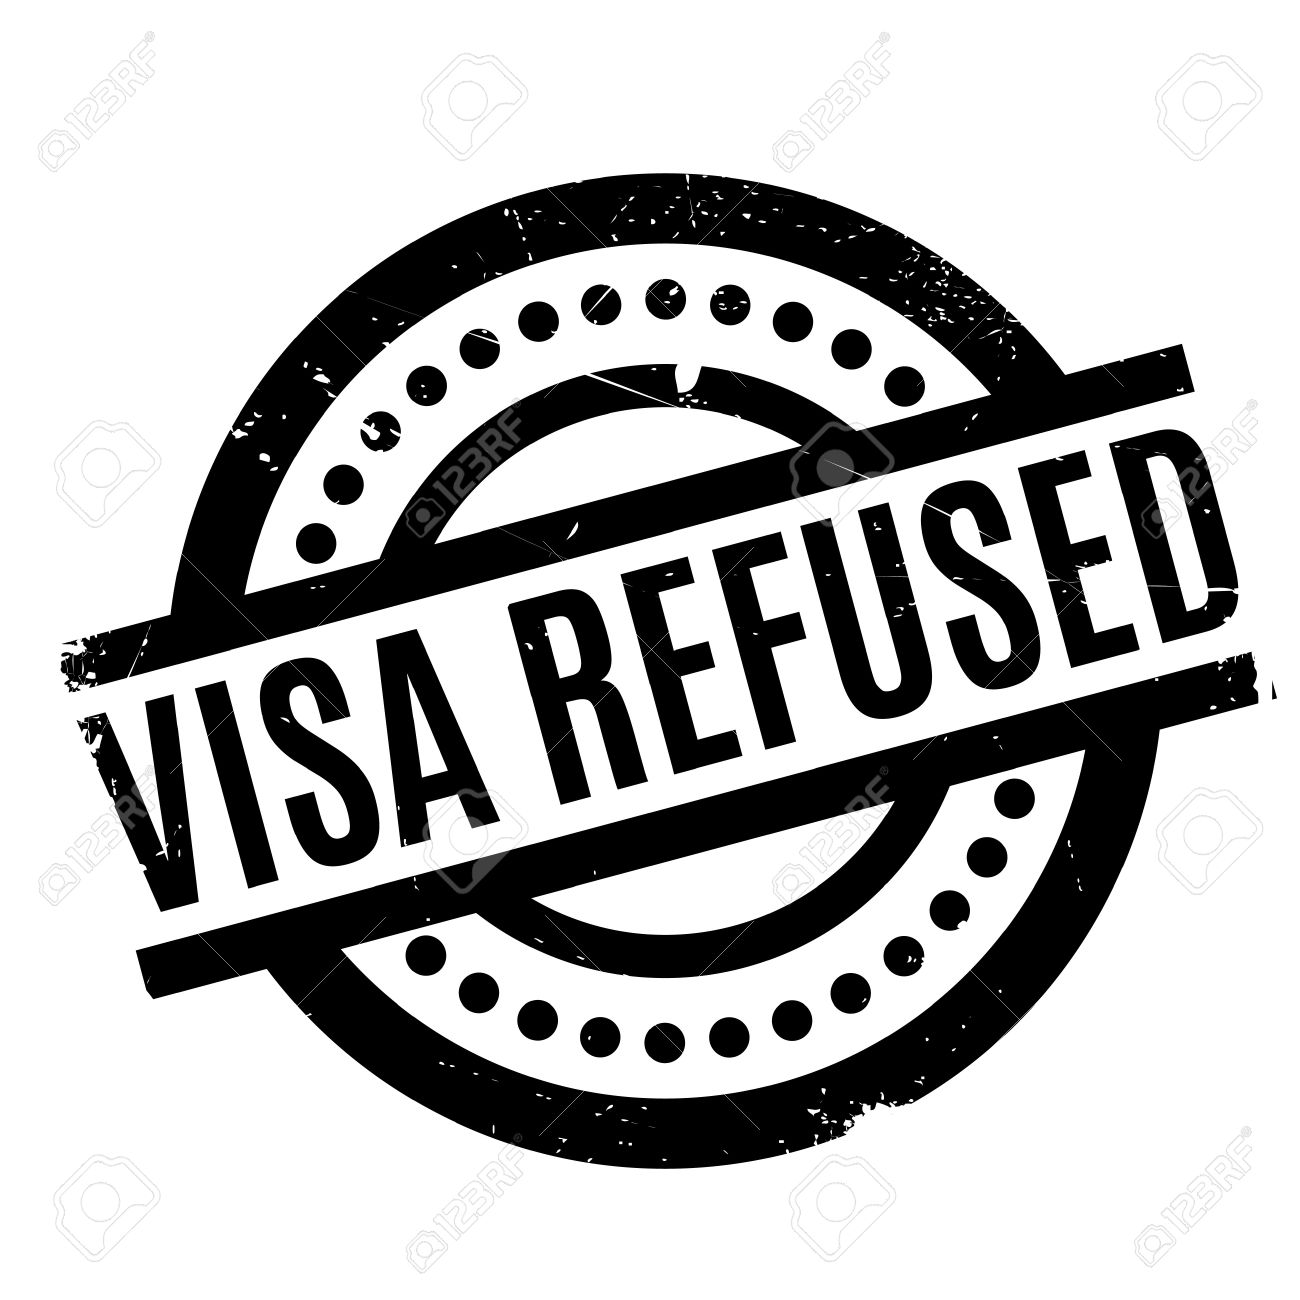 Visa Refused Rubber Stamp Grunge Design With Dust Scratches